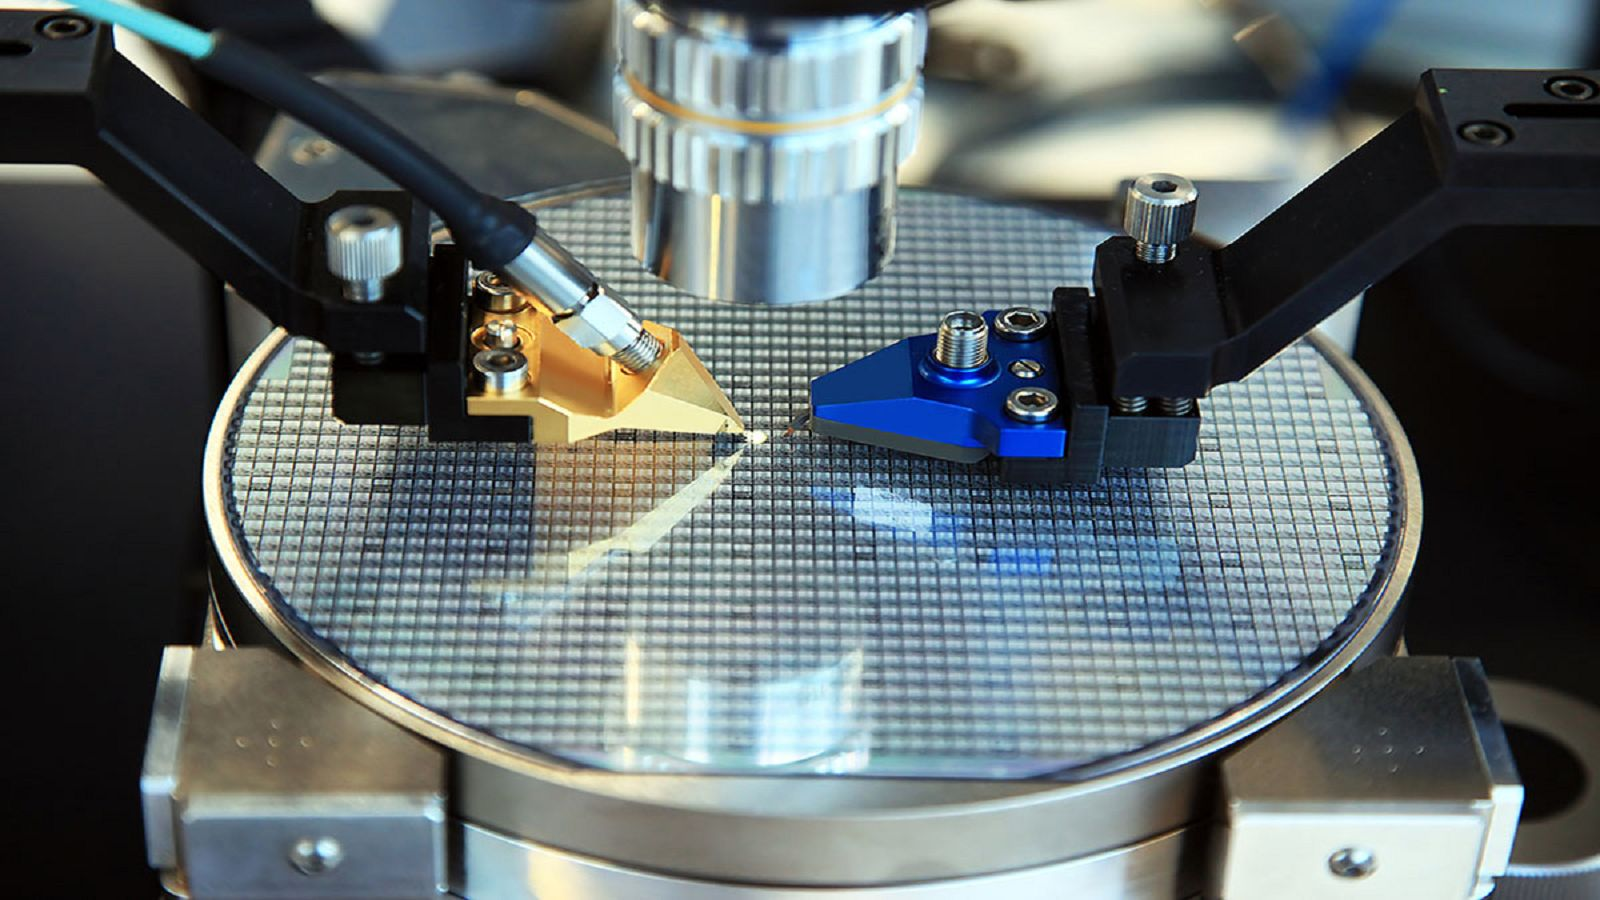 3 Steps to Characterize RF Devices with Stimulus-Response Measurements